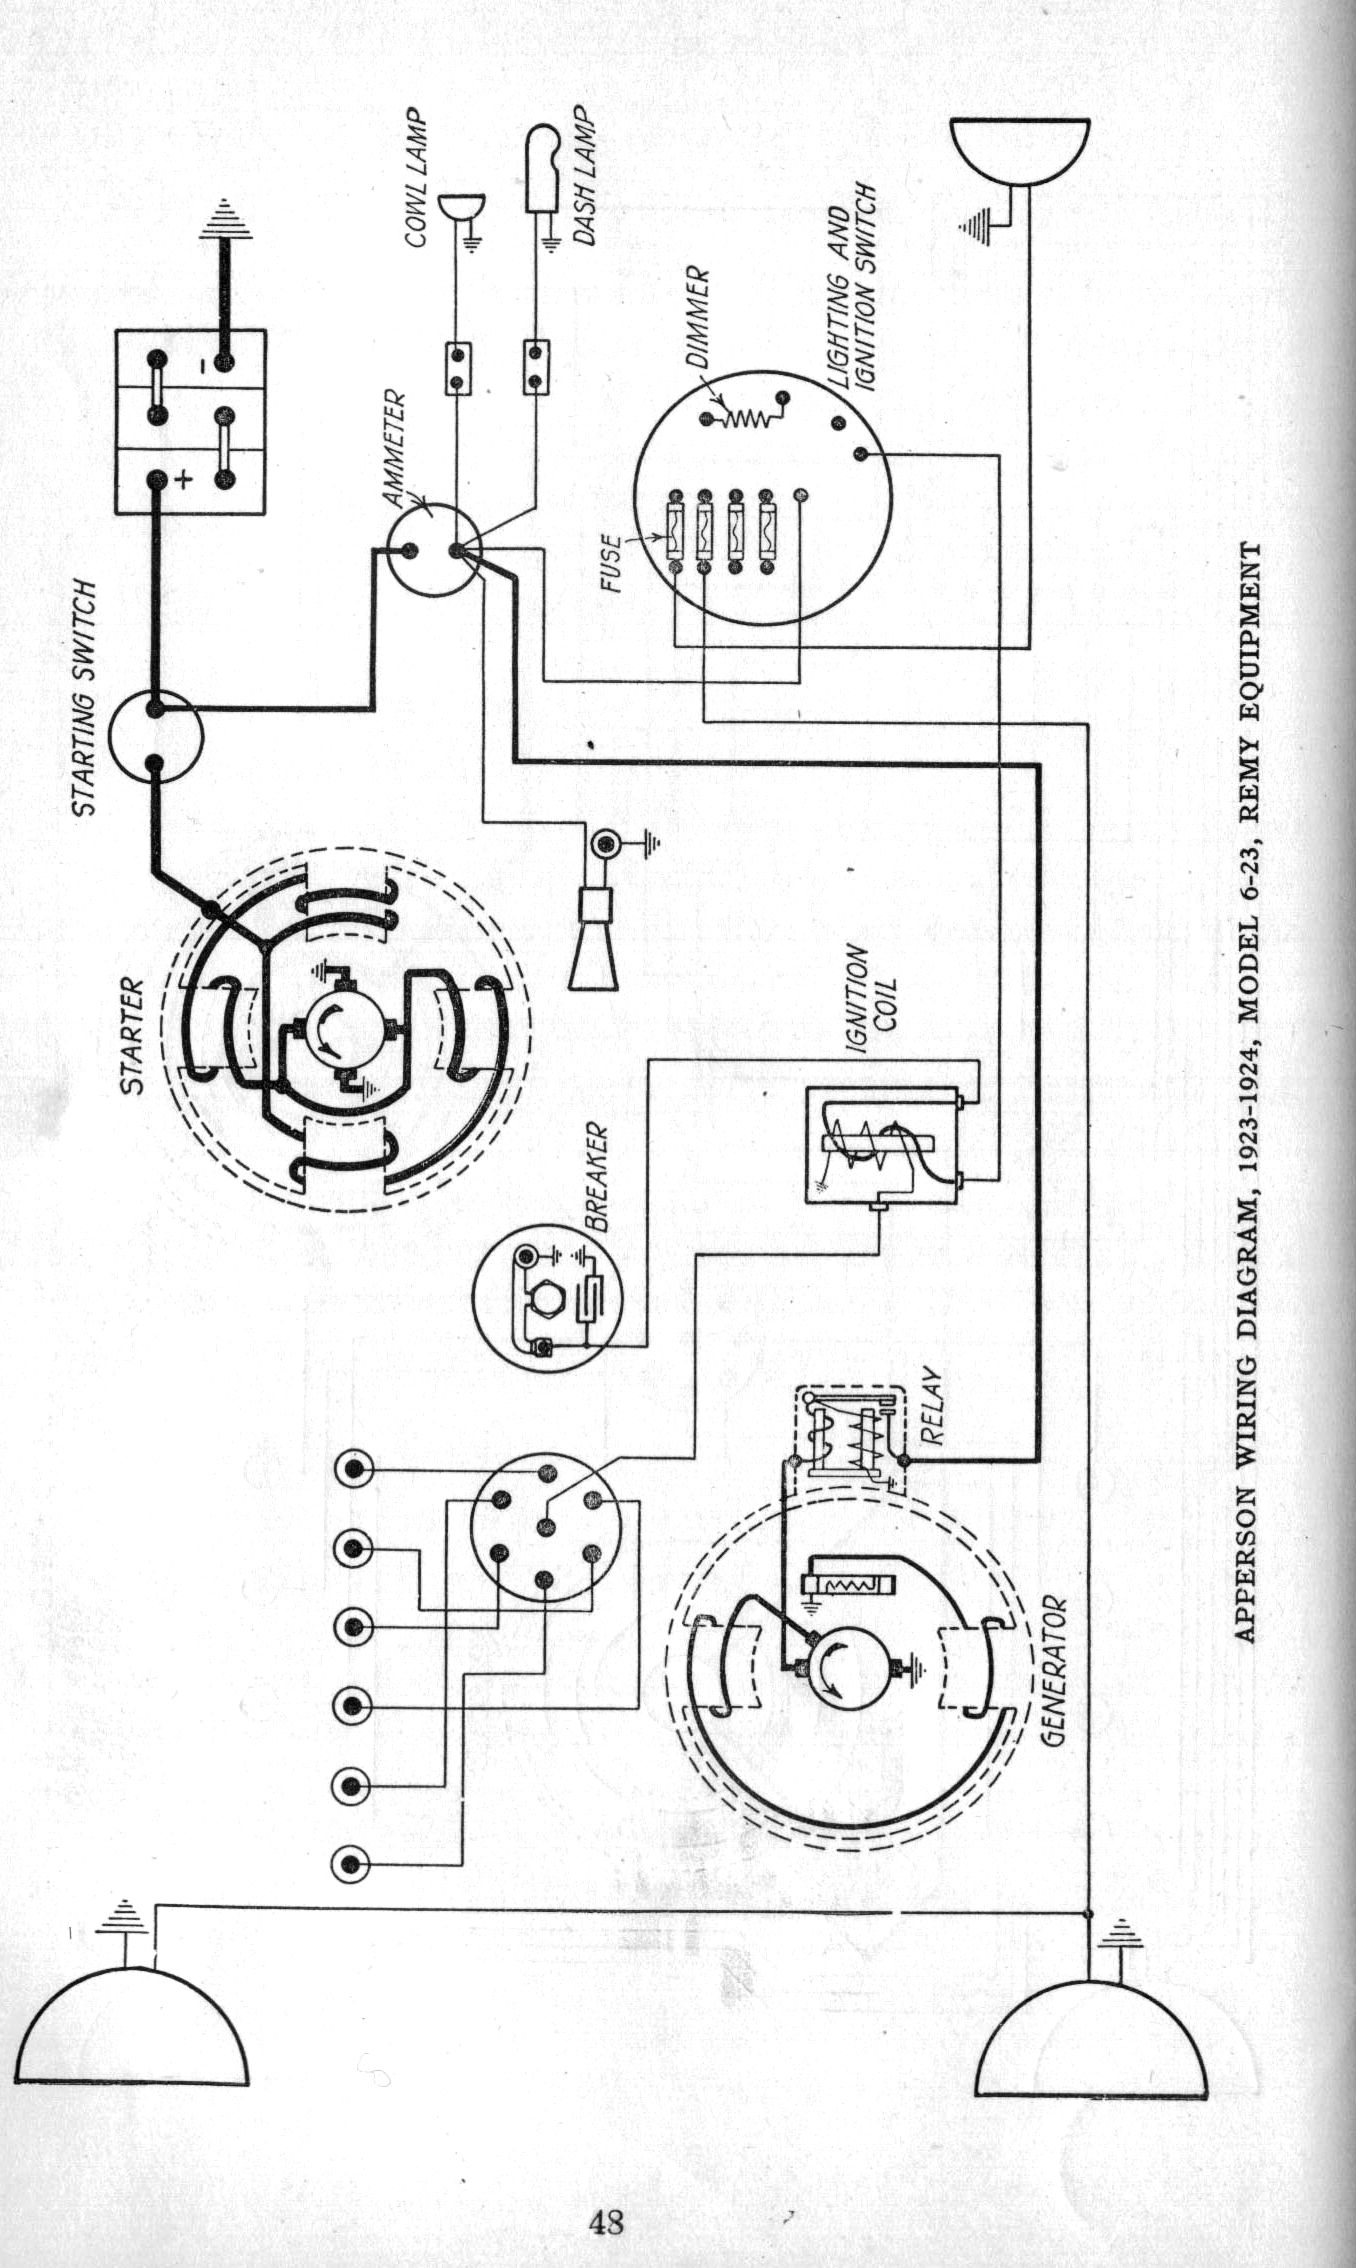 Model A Ford Wiring Diagram With Cowl Lamps : 43 Wiring